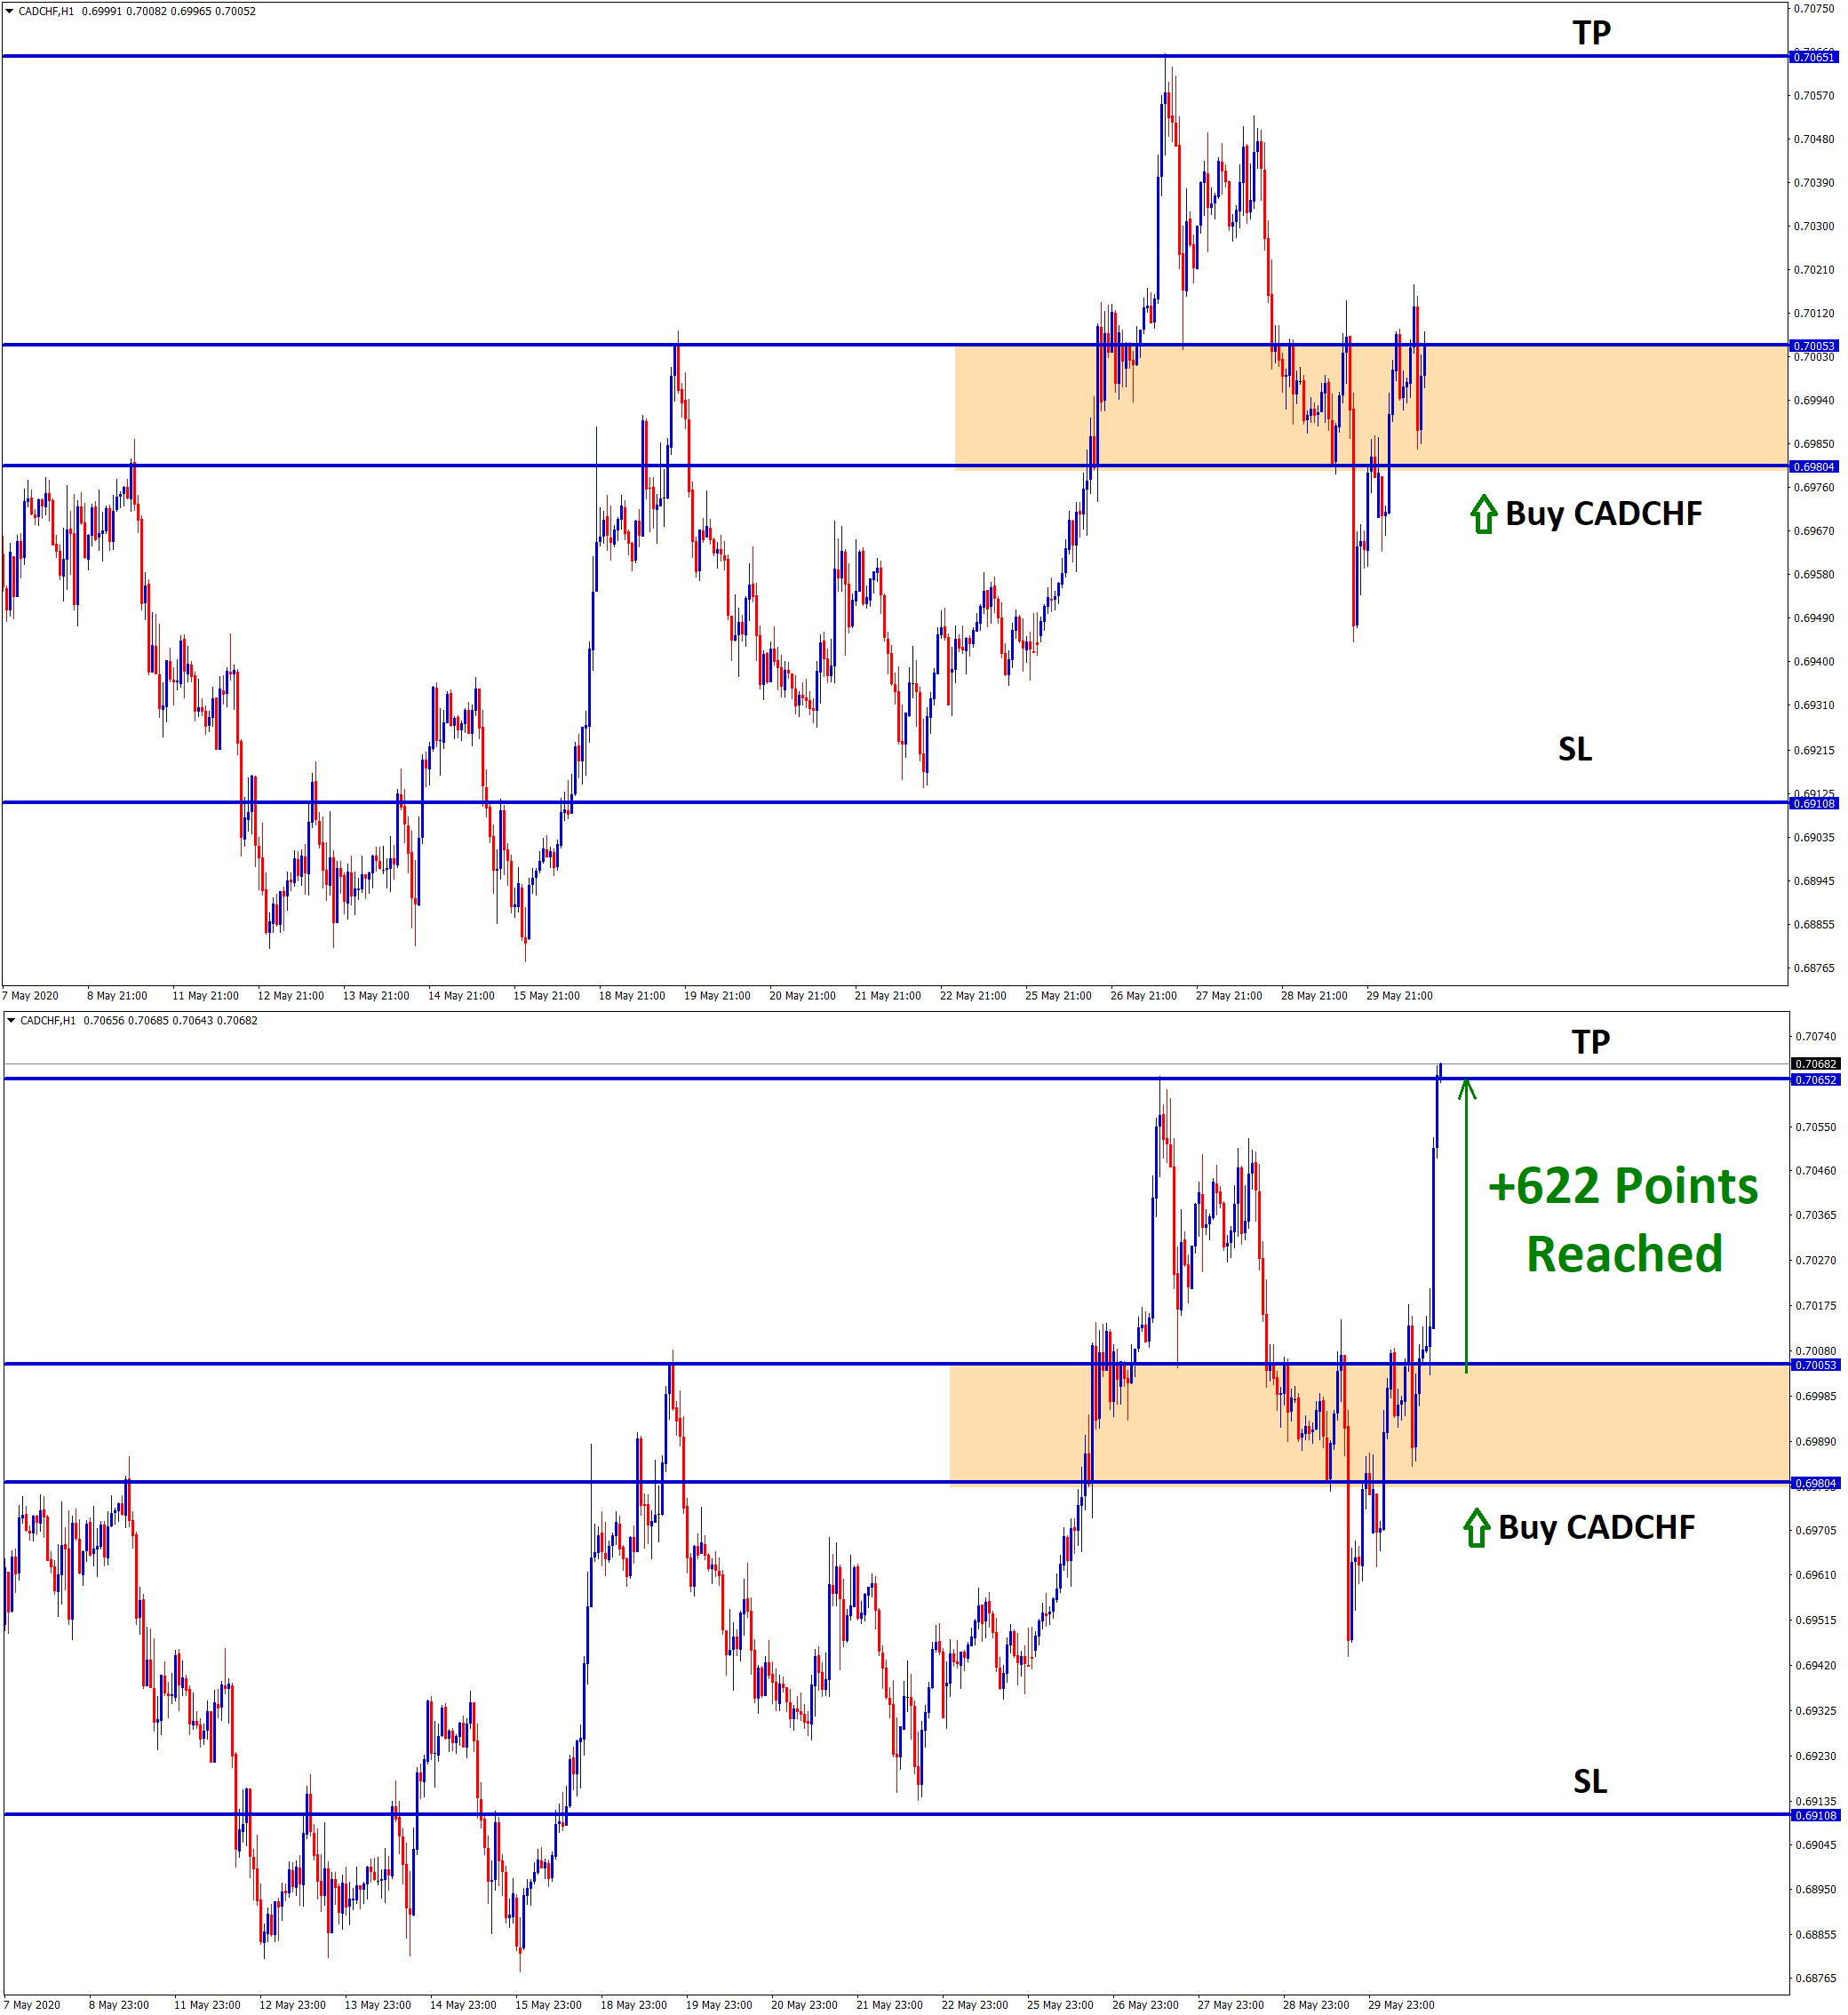 cadchf rising wedge signal reach 622 points